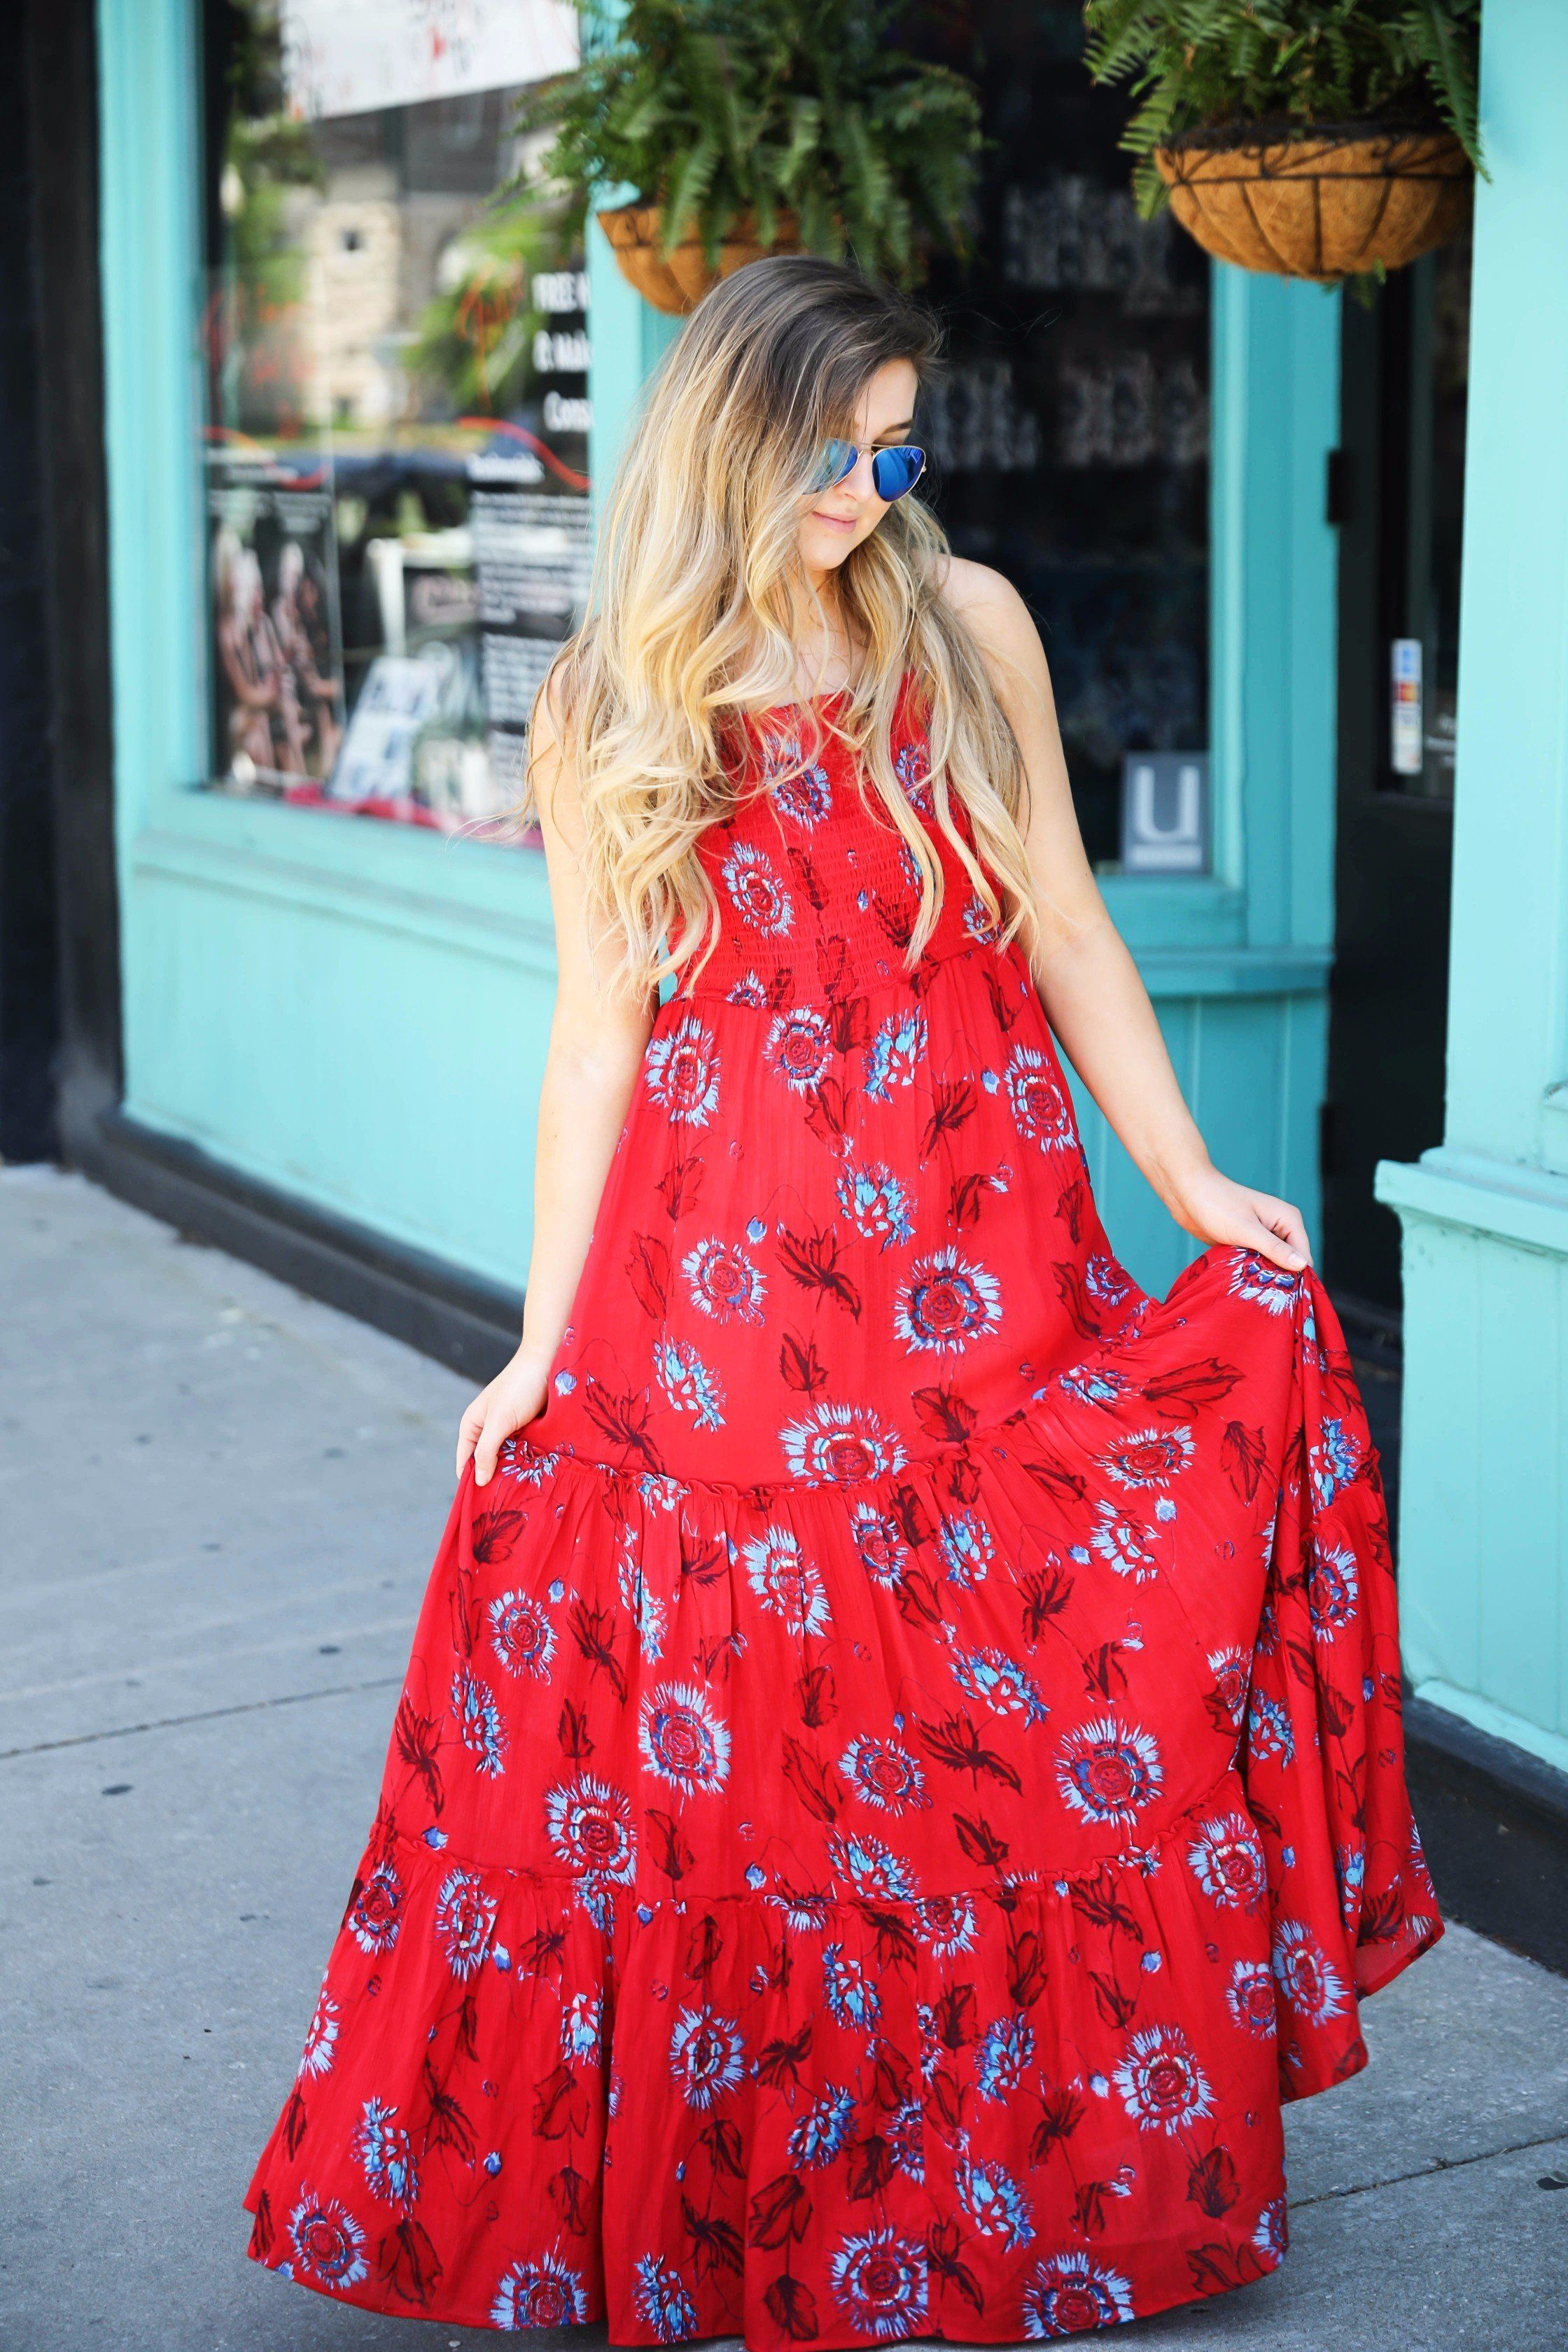 Free People Red Tie Back Maxi Dress For Summer And Fourth Of July Outfit By Lauren Lindmark On Daily Dose Of Ch Red Maxi Dress Outfit Red Dress Maxi Maxi Dress [ 3360 x 2240 Pixel ]